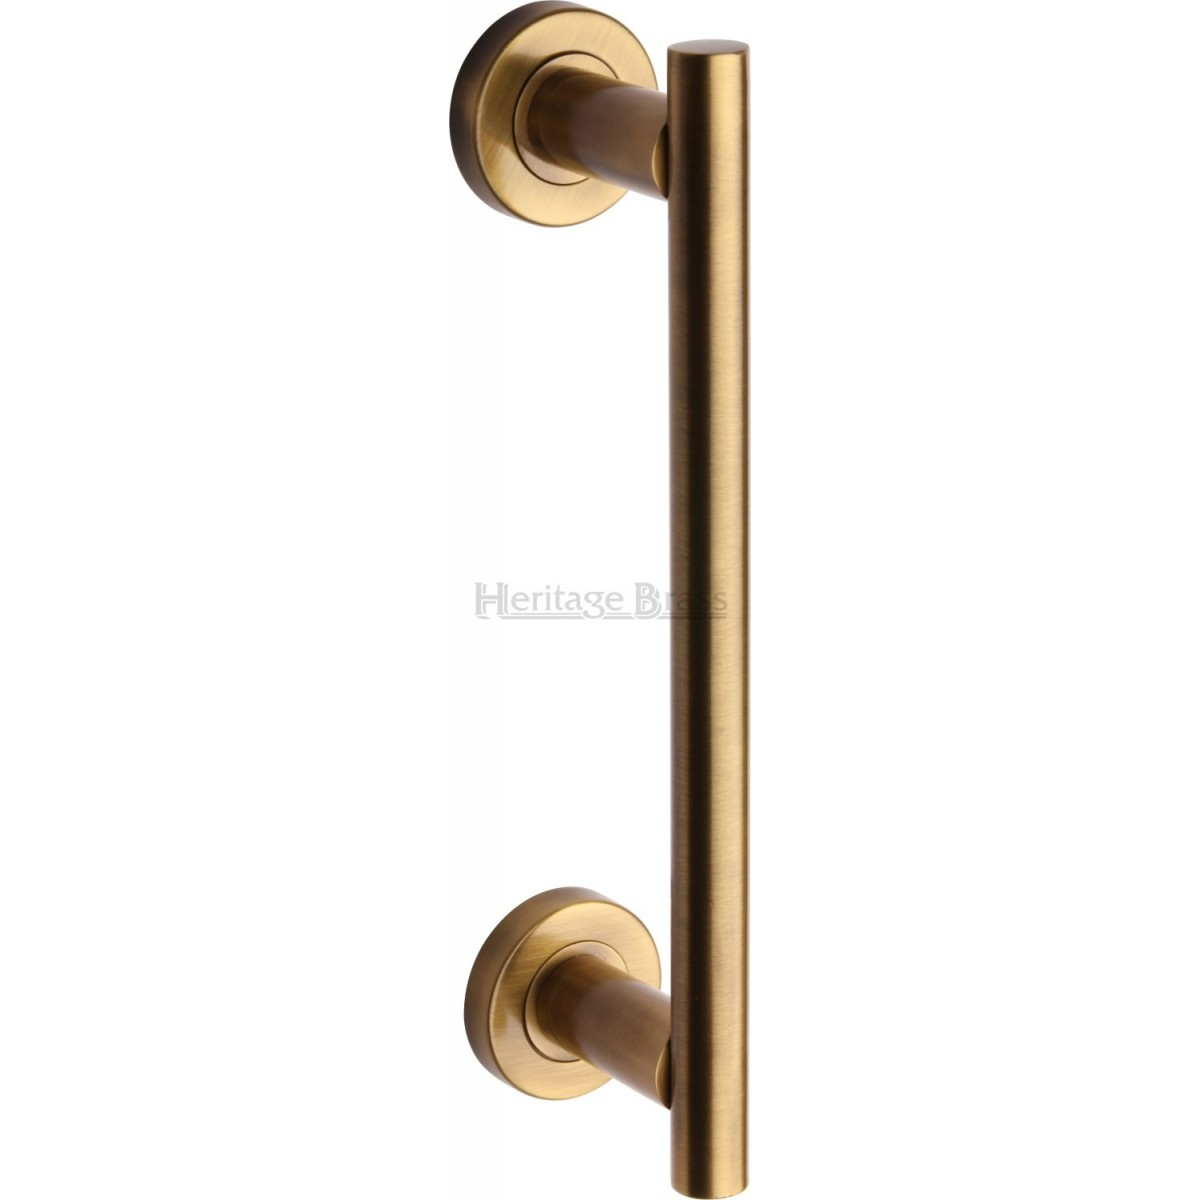 Heritage Brass Pull Handle On Rose V2057 Pull Handles